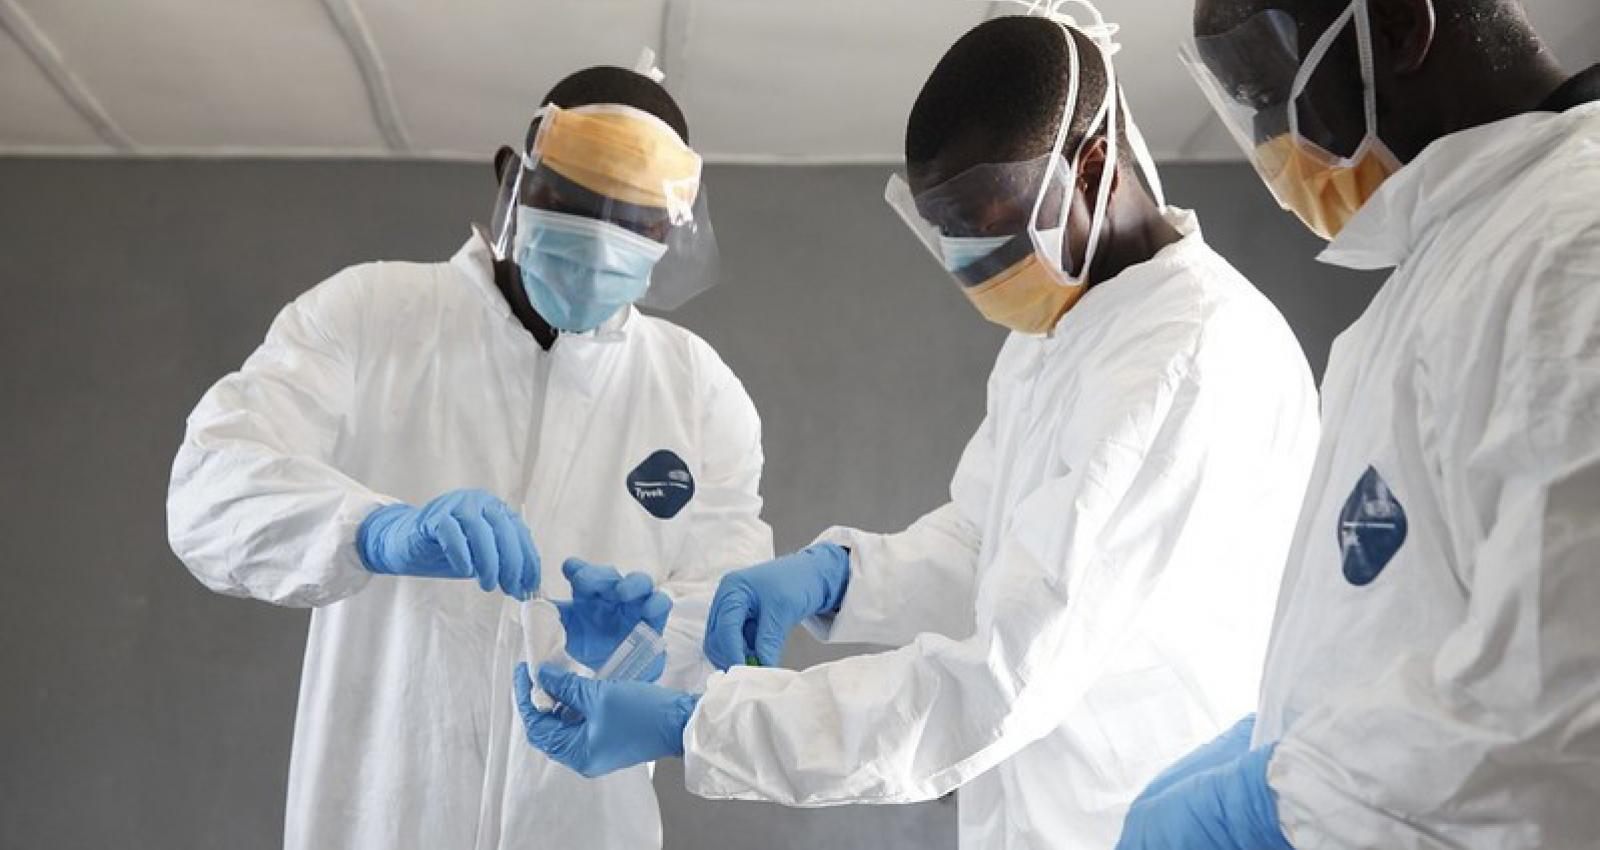 James Cooper, Sunday Bondo and Patrick Lappaya work together closely to take a sample swab to help determine the death of a women at C.H. Rennie Hospital in Kakata, Margibi County in Liberia on March 10, 2016. Image Credit World Bank